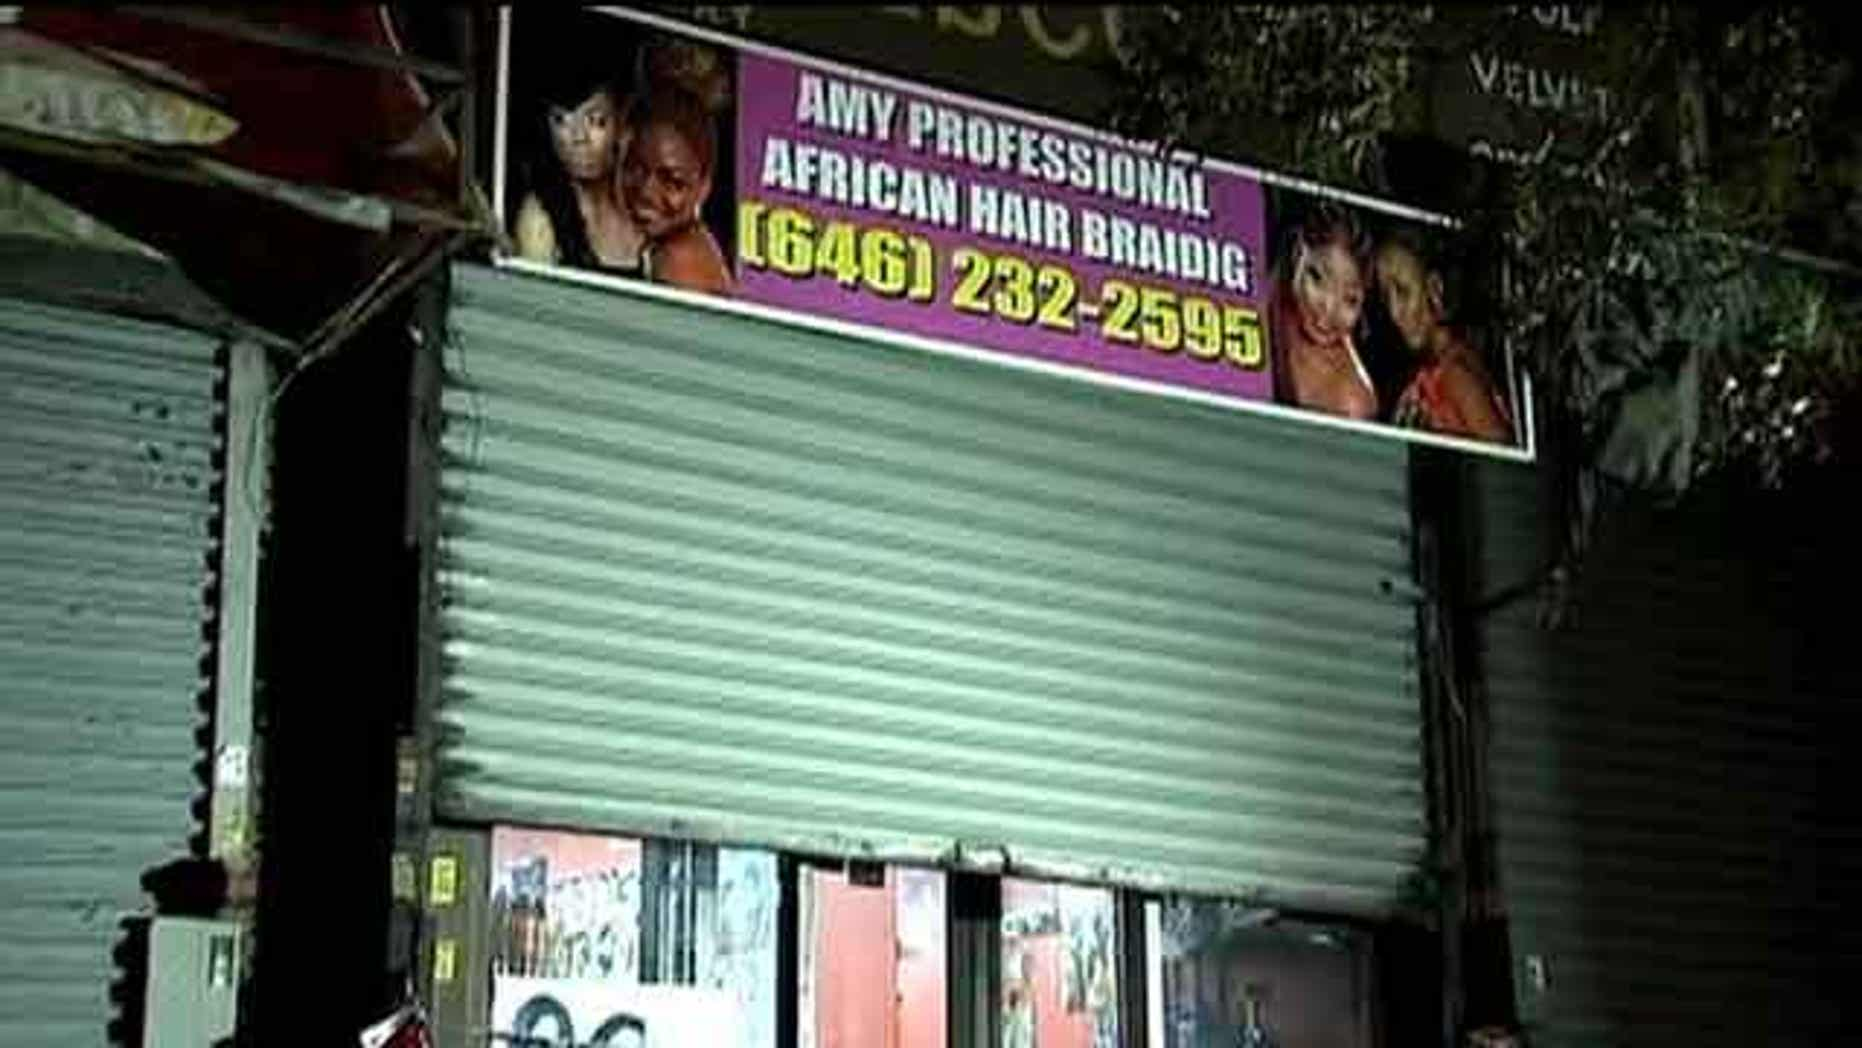 The 40-year-old, whom authorities have identified as a woman, had returned from West Africa 18 days ago when she reportedly keeled over in her chair on Tuesday inside Amy's Professional African Hair Braiding, a Brooklyn hair salon.